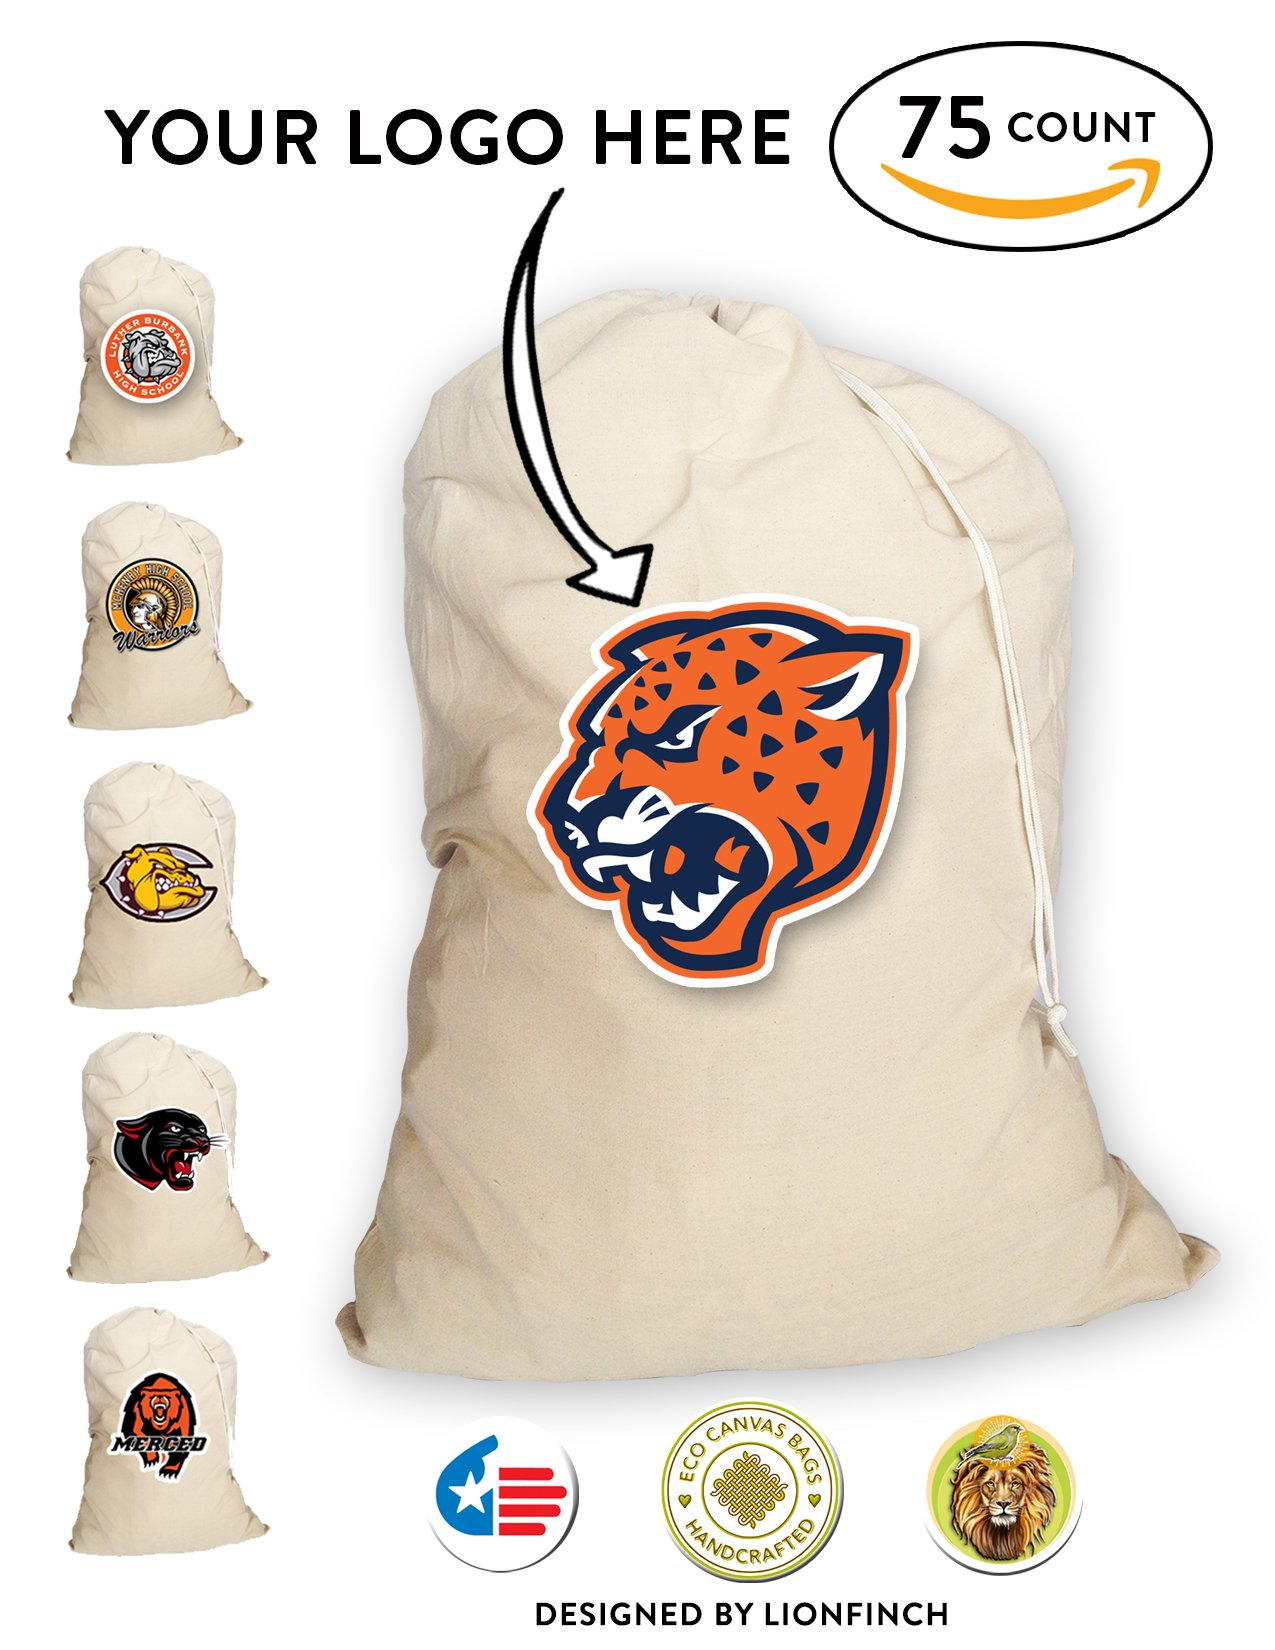 Custom Silk Screened Volleyball Equipment/Ball Bags With Your Cool Logo- 75 Count. Heavy Duty, Extra Large- 150 Pound Load Capacity Canvas Bags. Proudly Made in America.